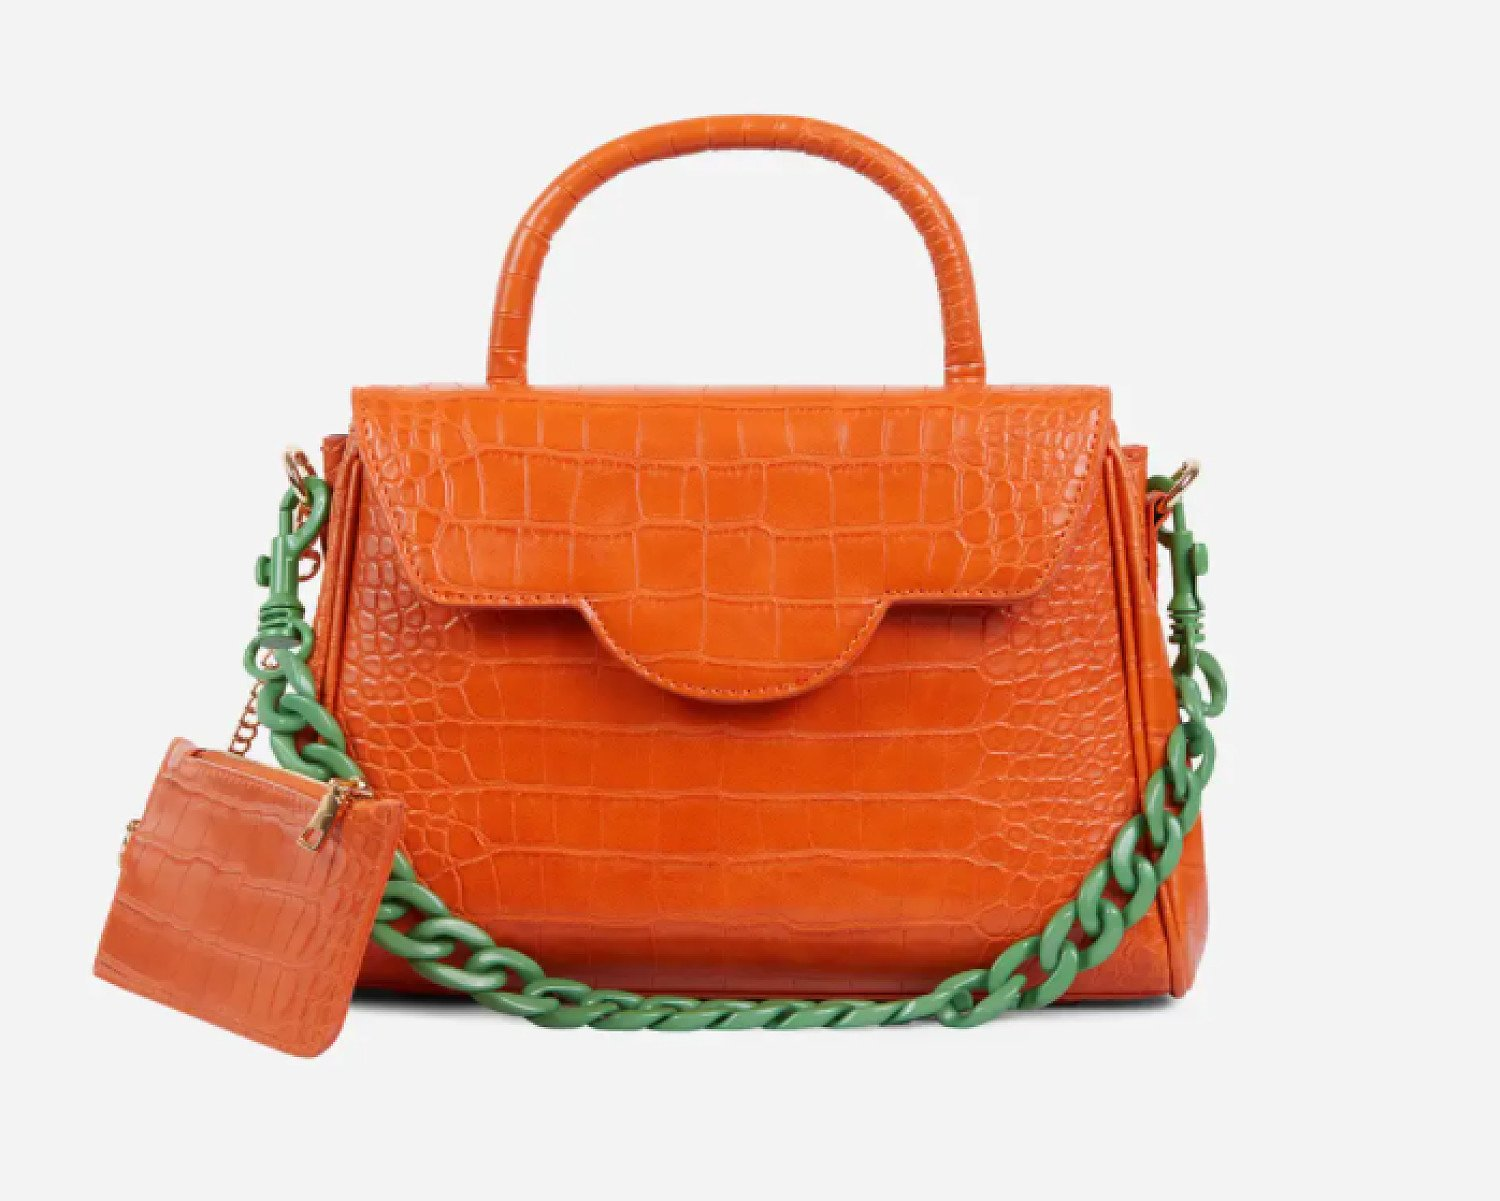 SAVE - Rosa Green Chain And Purse Detail Tote Bag In Orange Croc Print Faux Leather